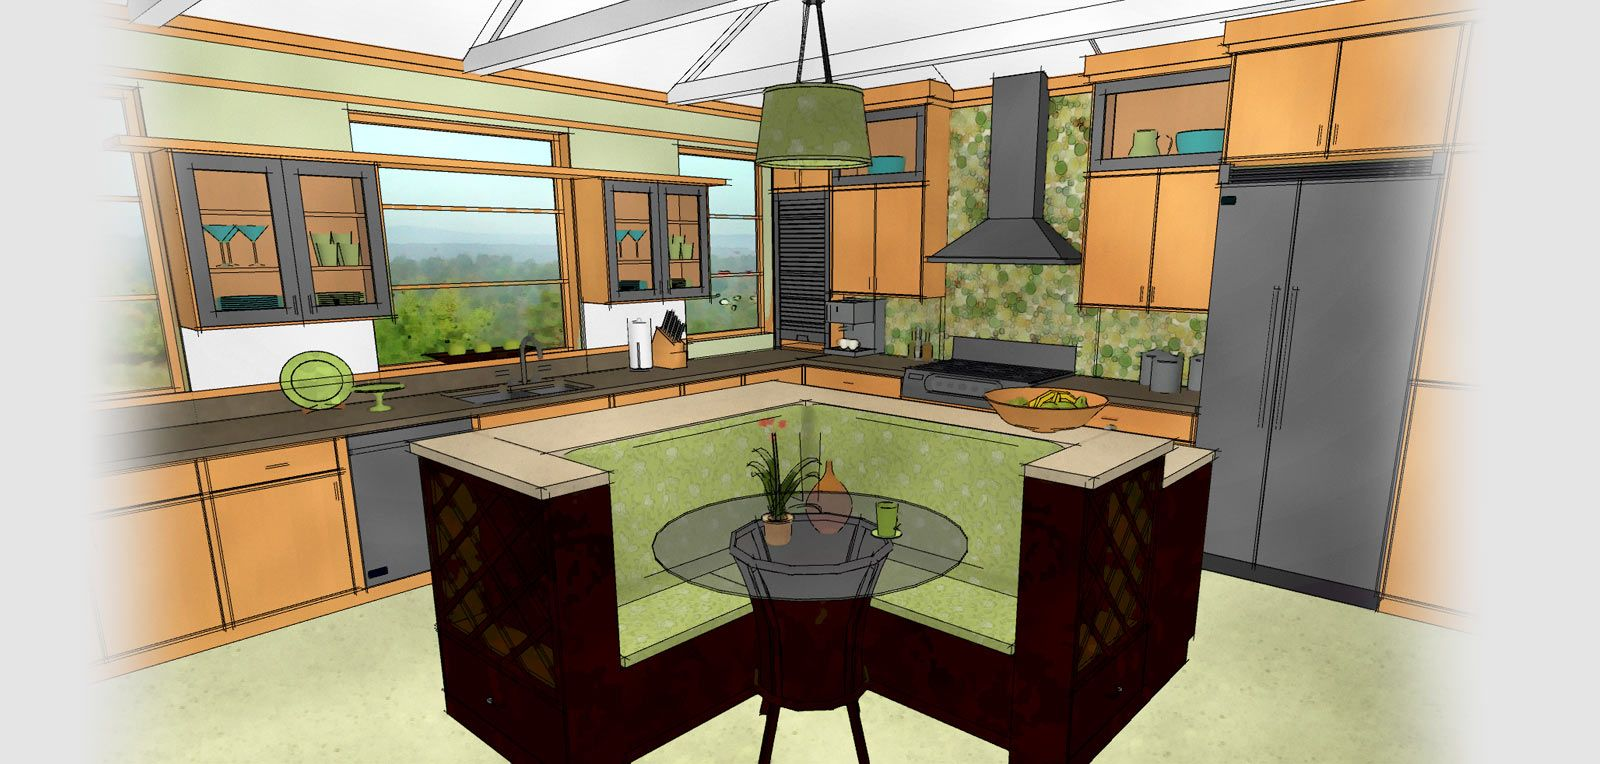 Uncategorized Computer Kitchen Design technical drawing of a kitchen generated by home designer ideas cabinet tools software design choose from special best free id